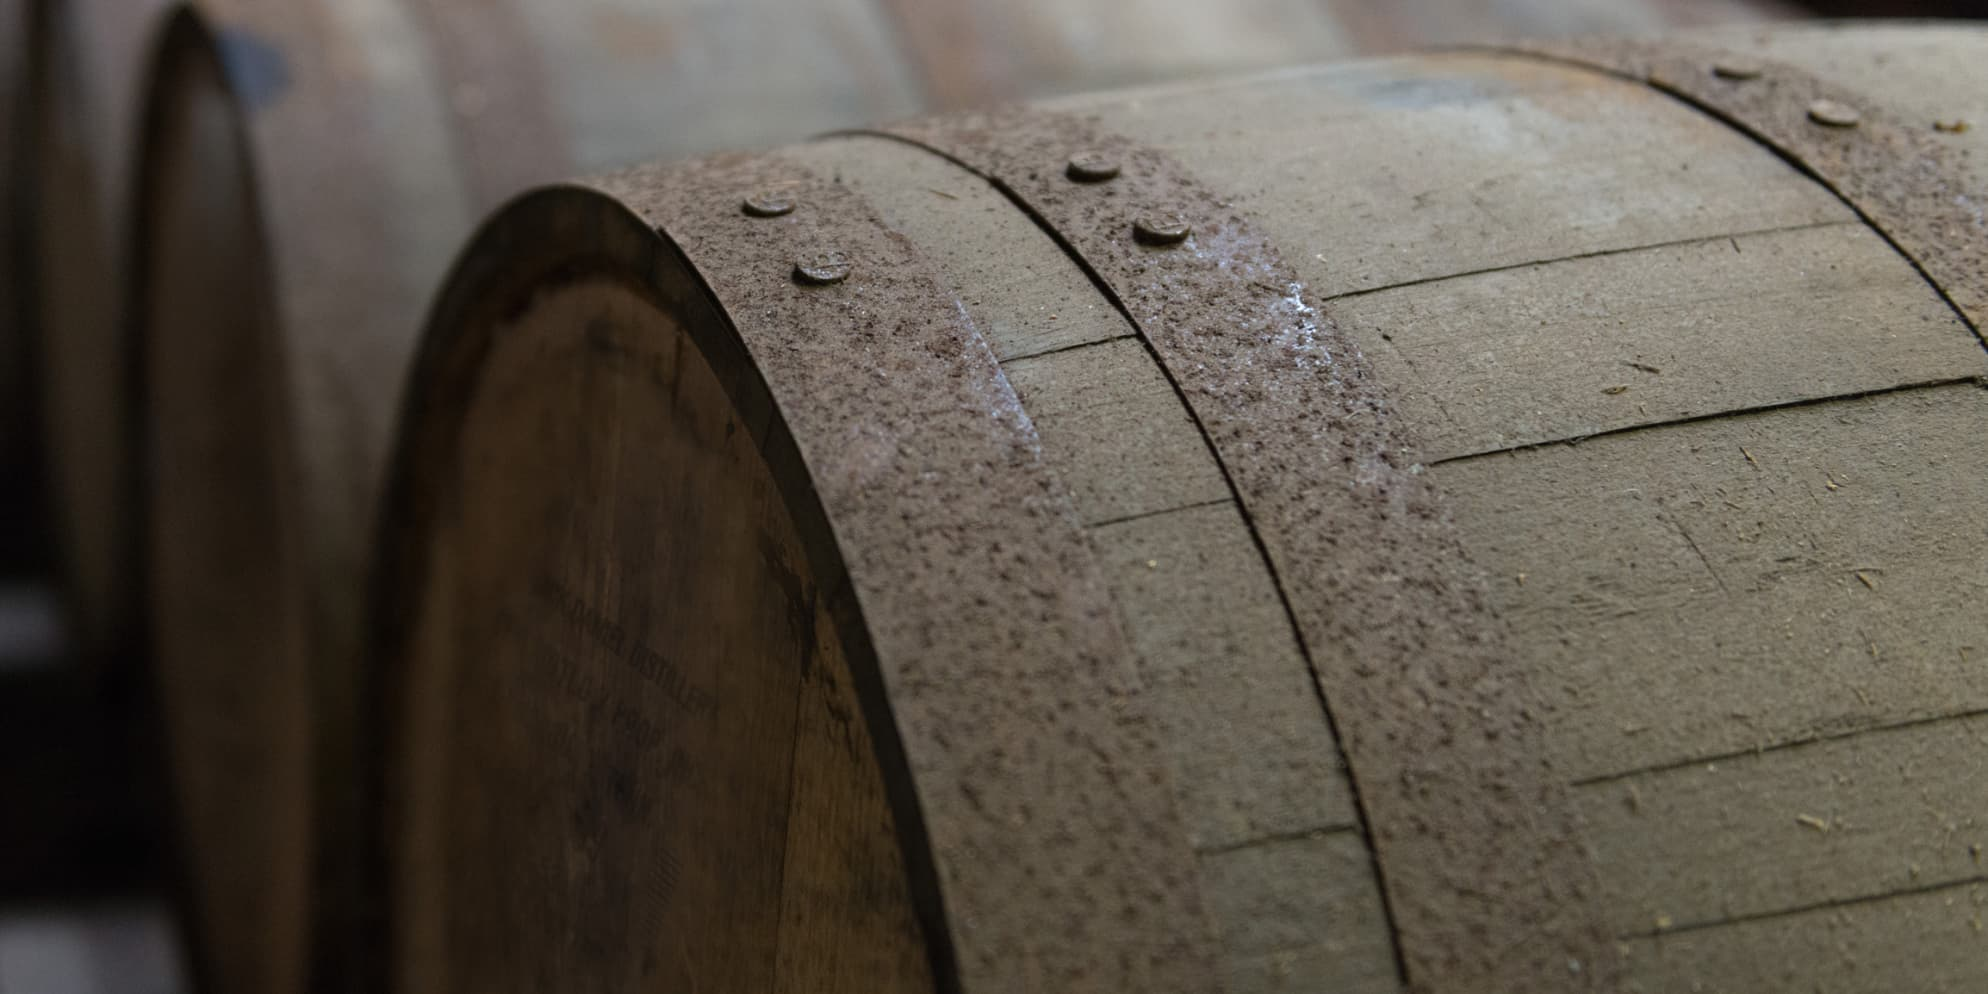 Ballantine's Scotch Whisky in Oak Casks